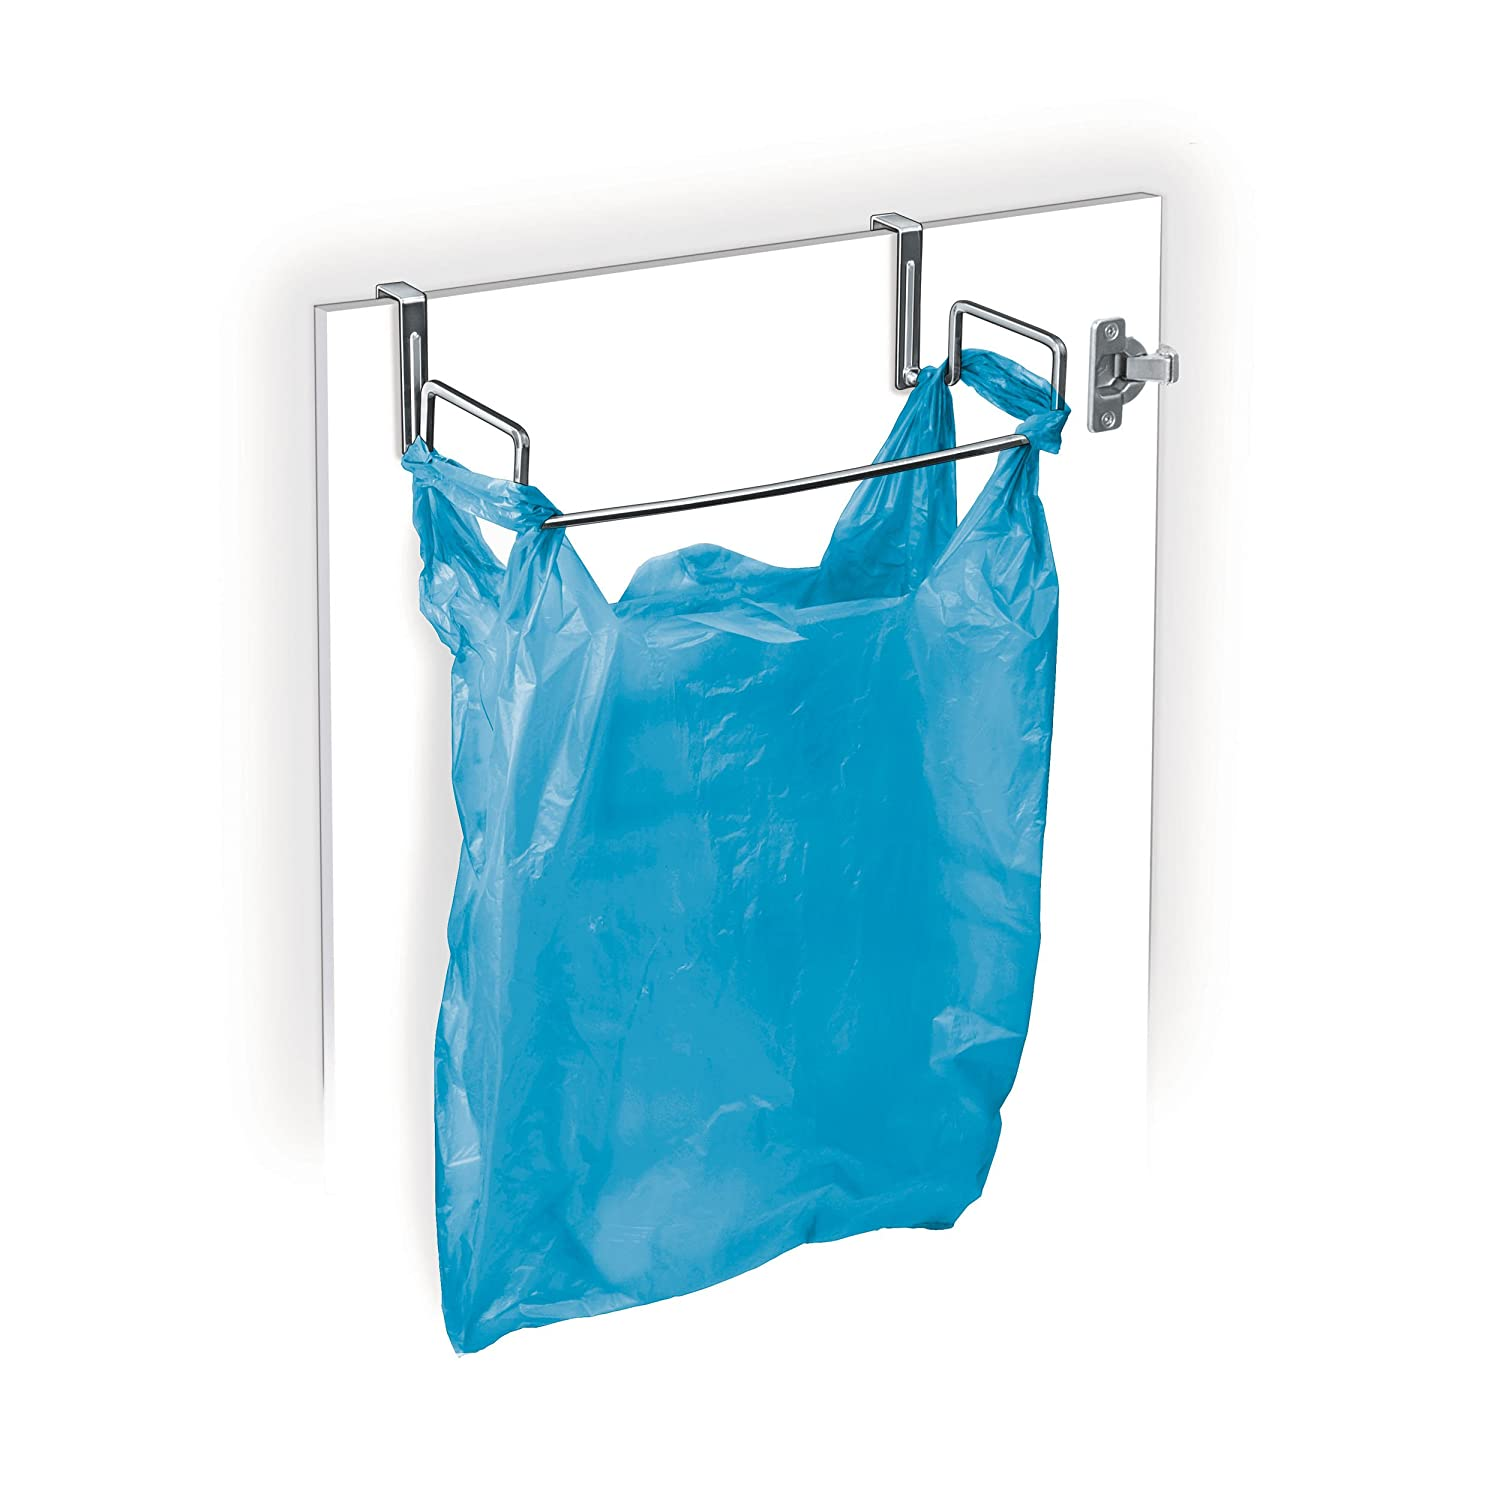 Amazon.com: Lynk Over Cabinet Door Organizer - Plastic Bag Holder ...